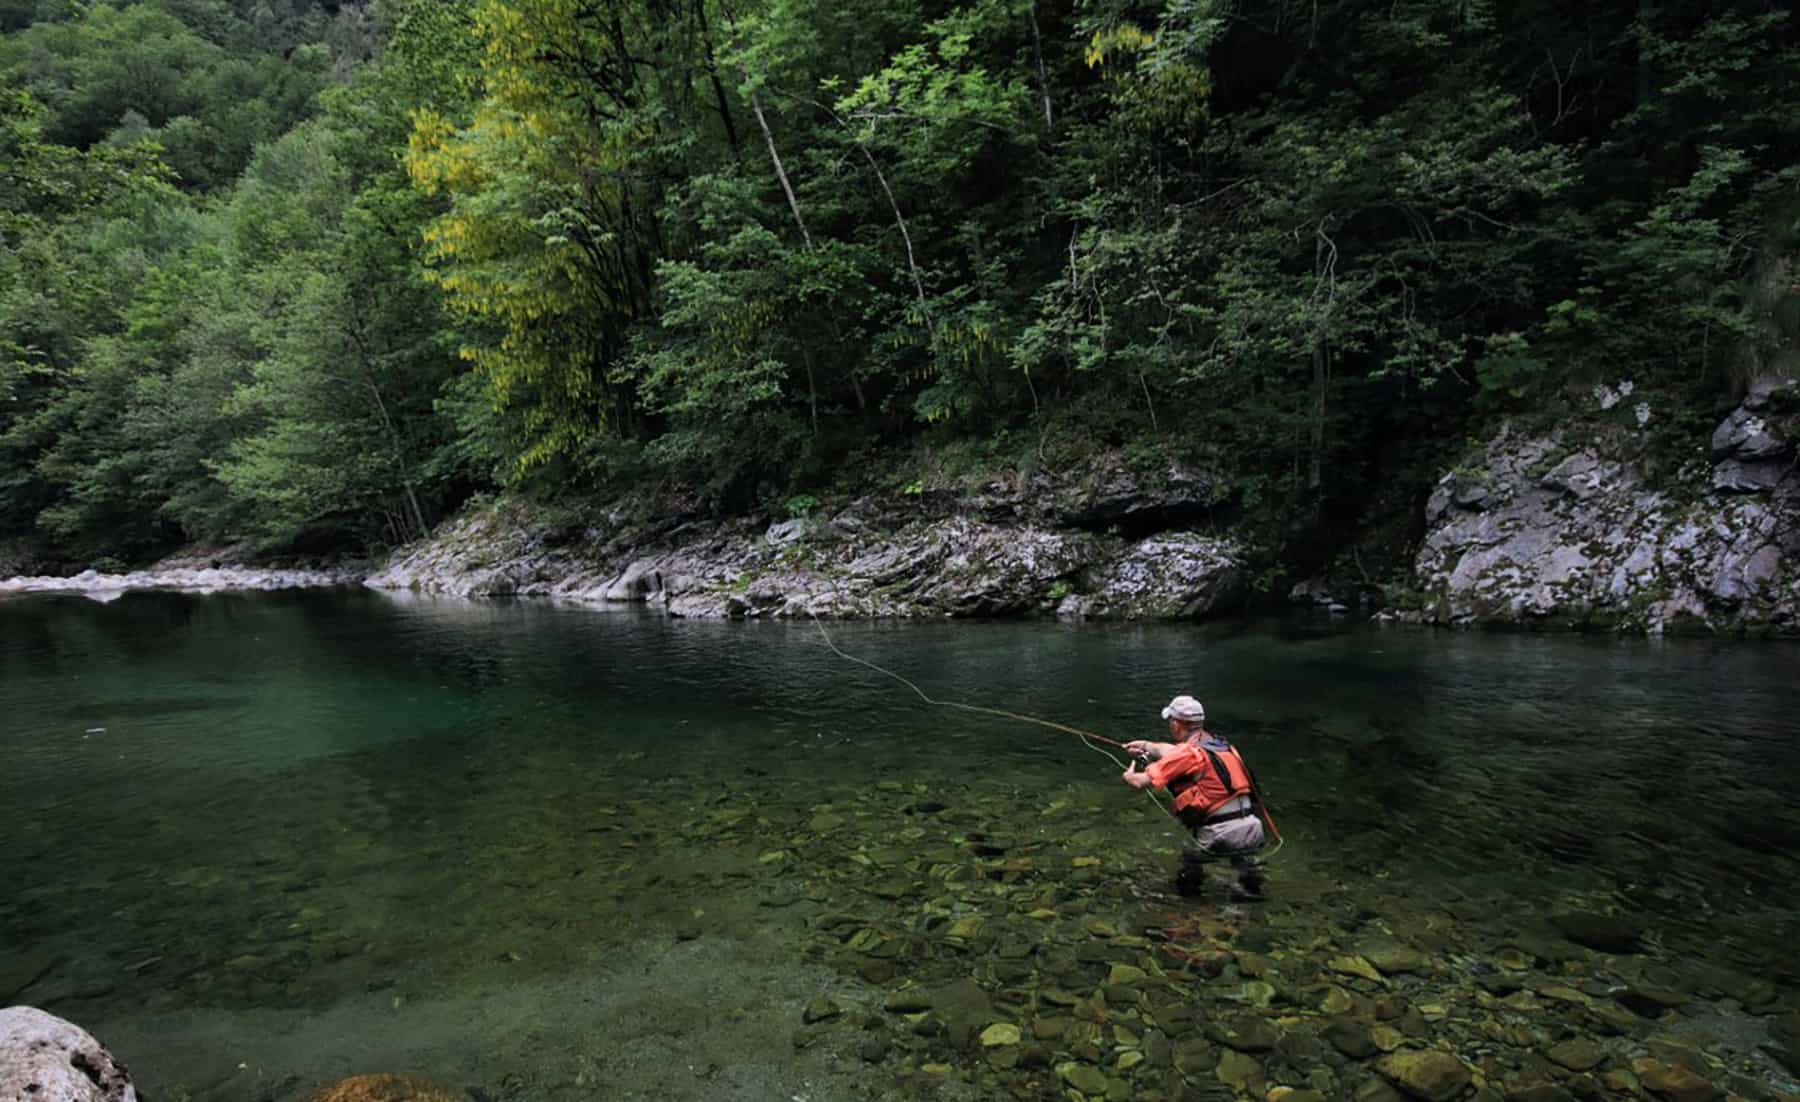 Fly fishing on the River Tara